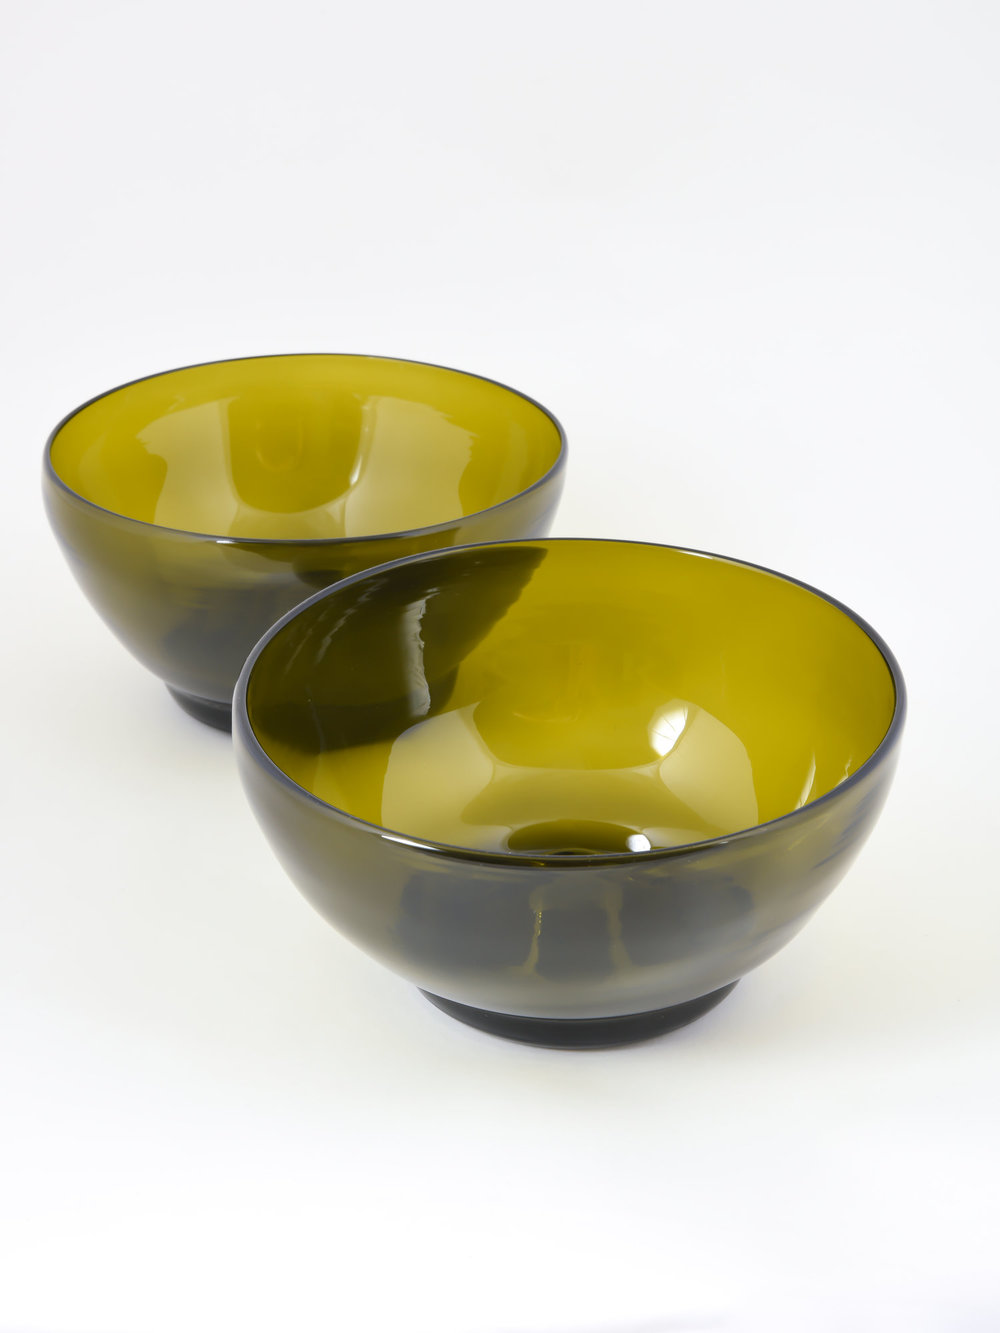 Champagne Bottle Portion Bowls ($175), Remark Glass